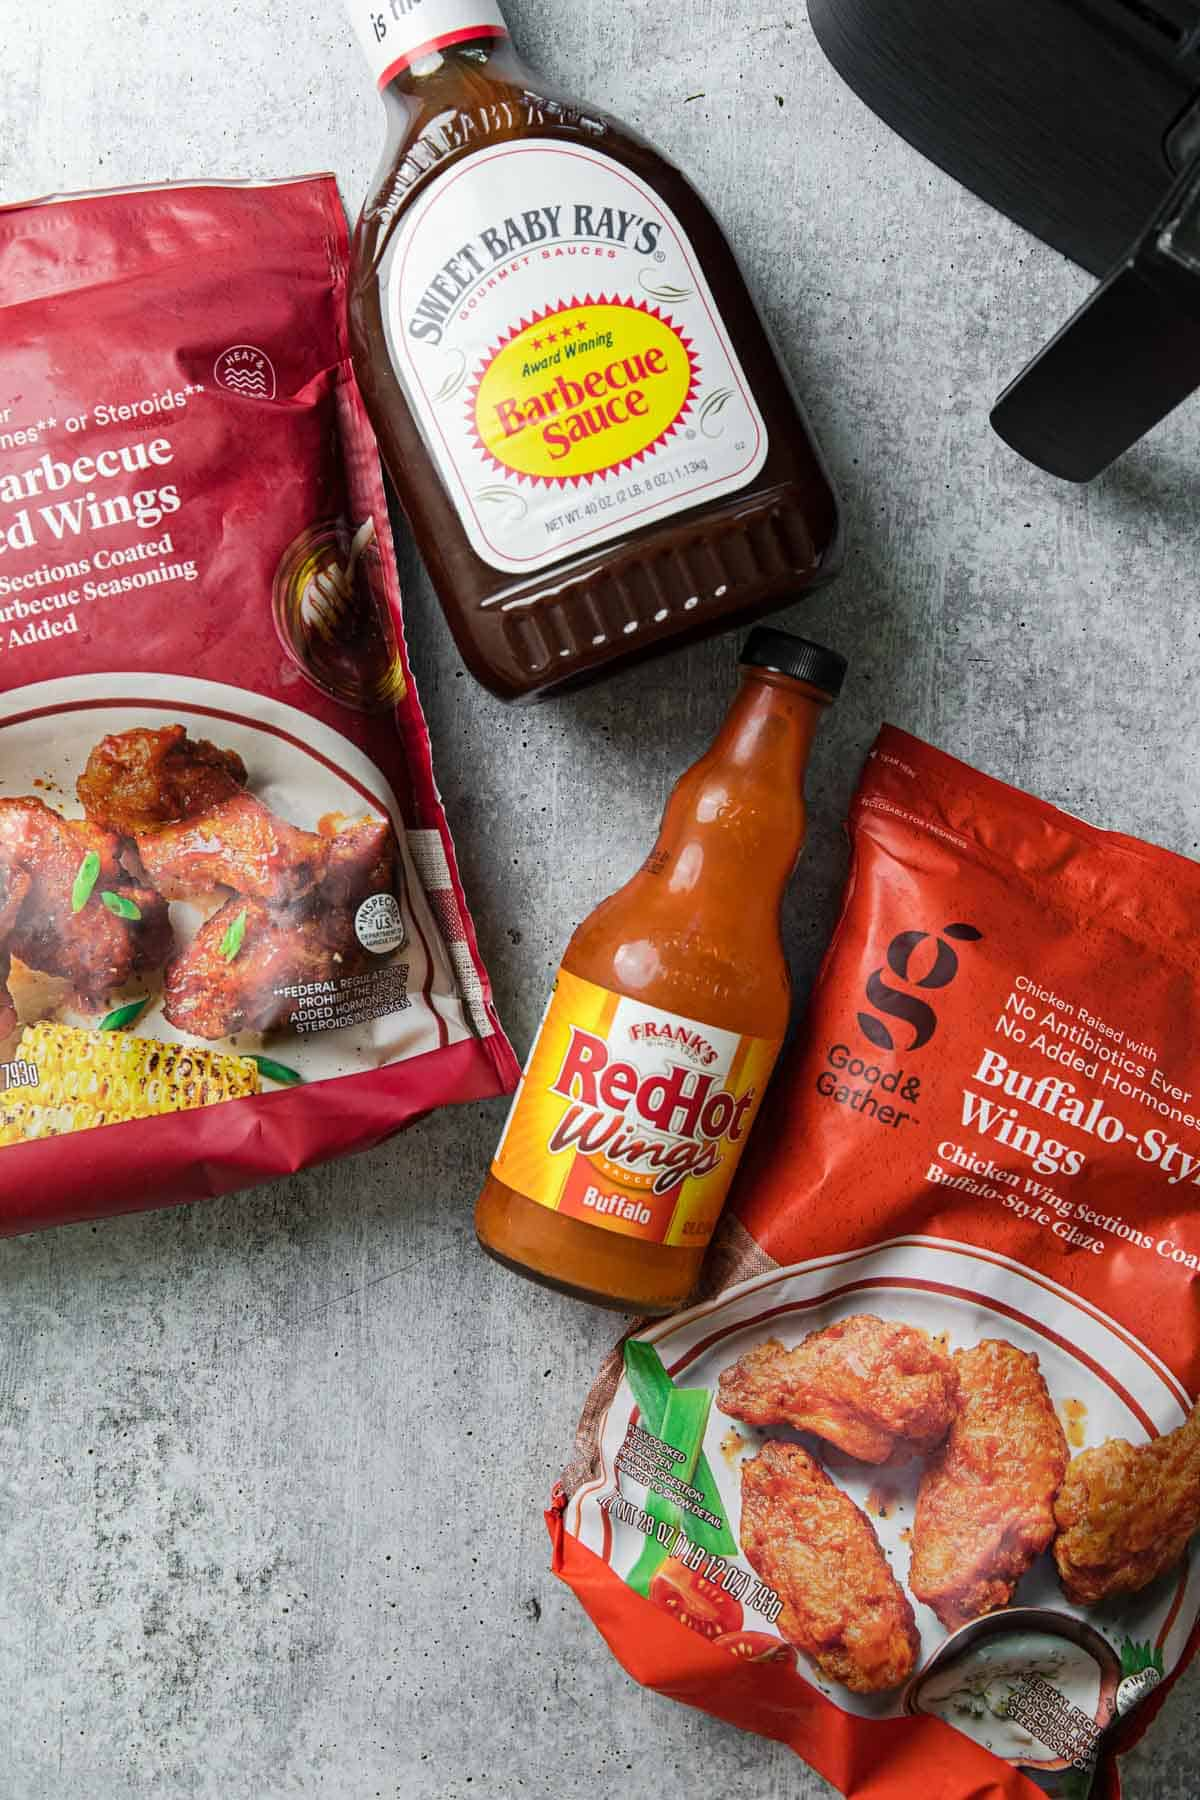 precooked store bough chicken wings with bbq and buffalo sauce